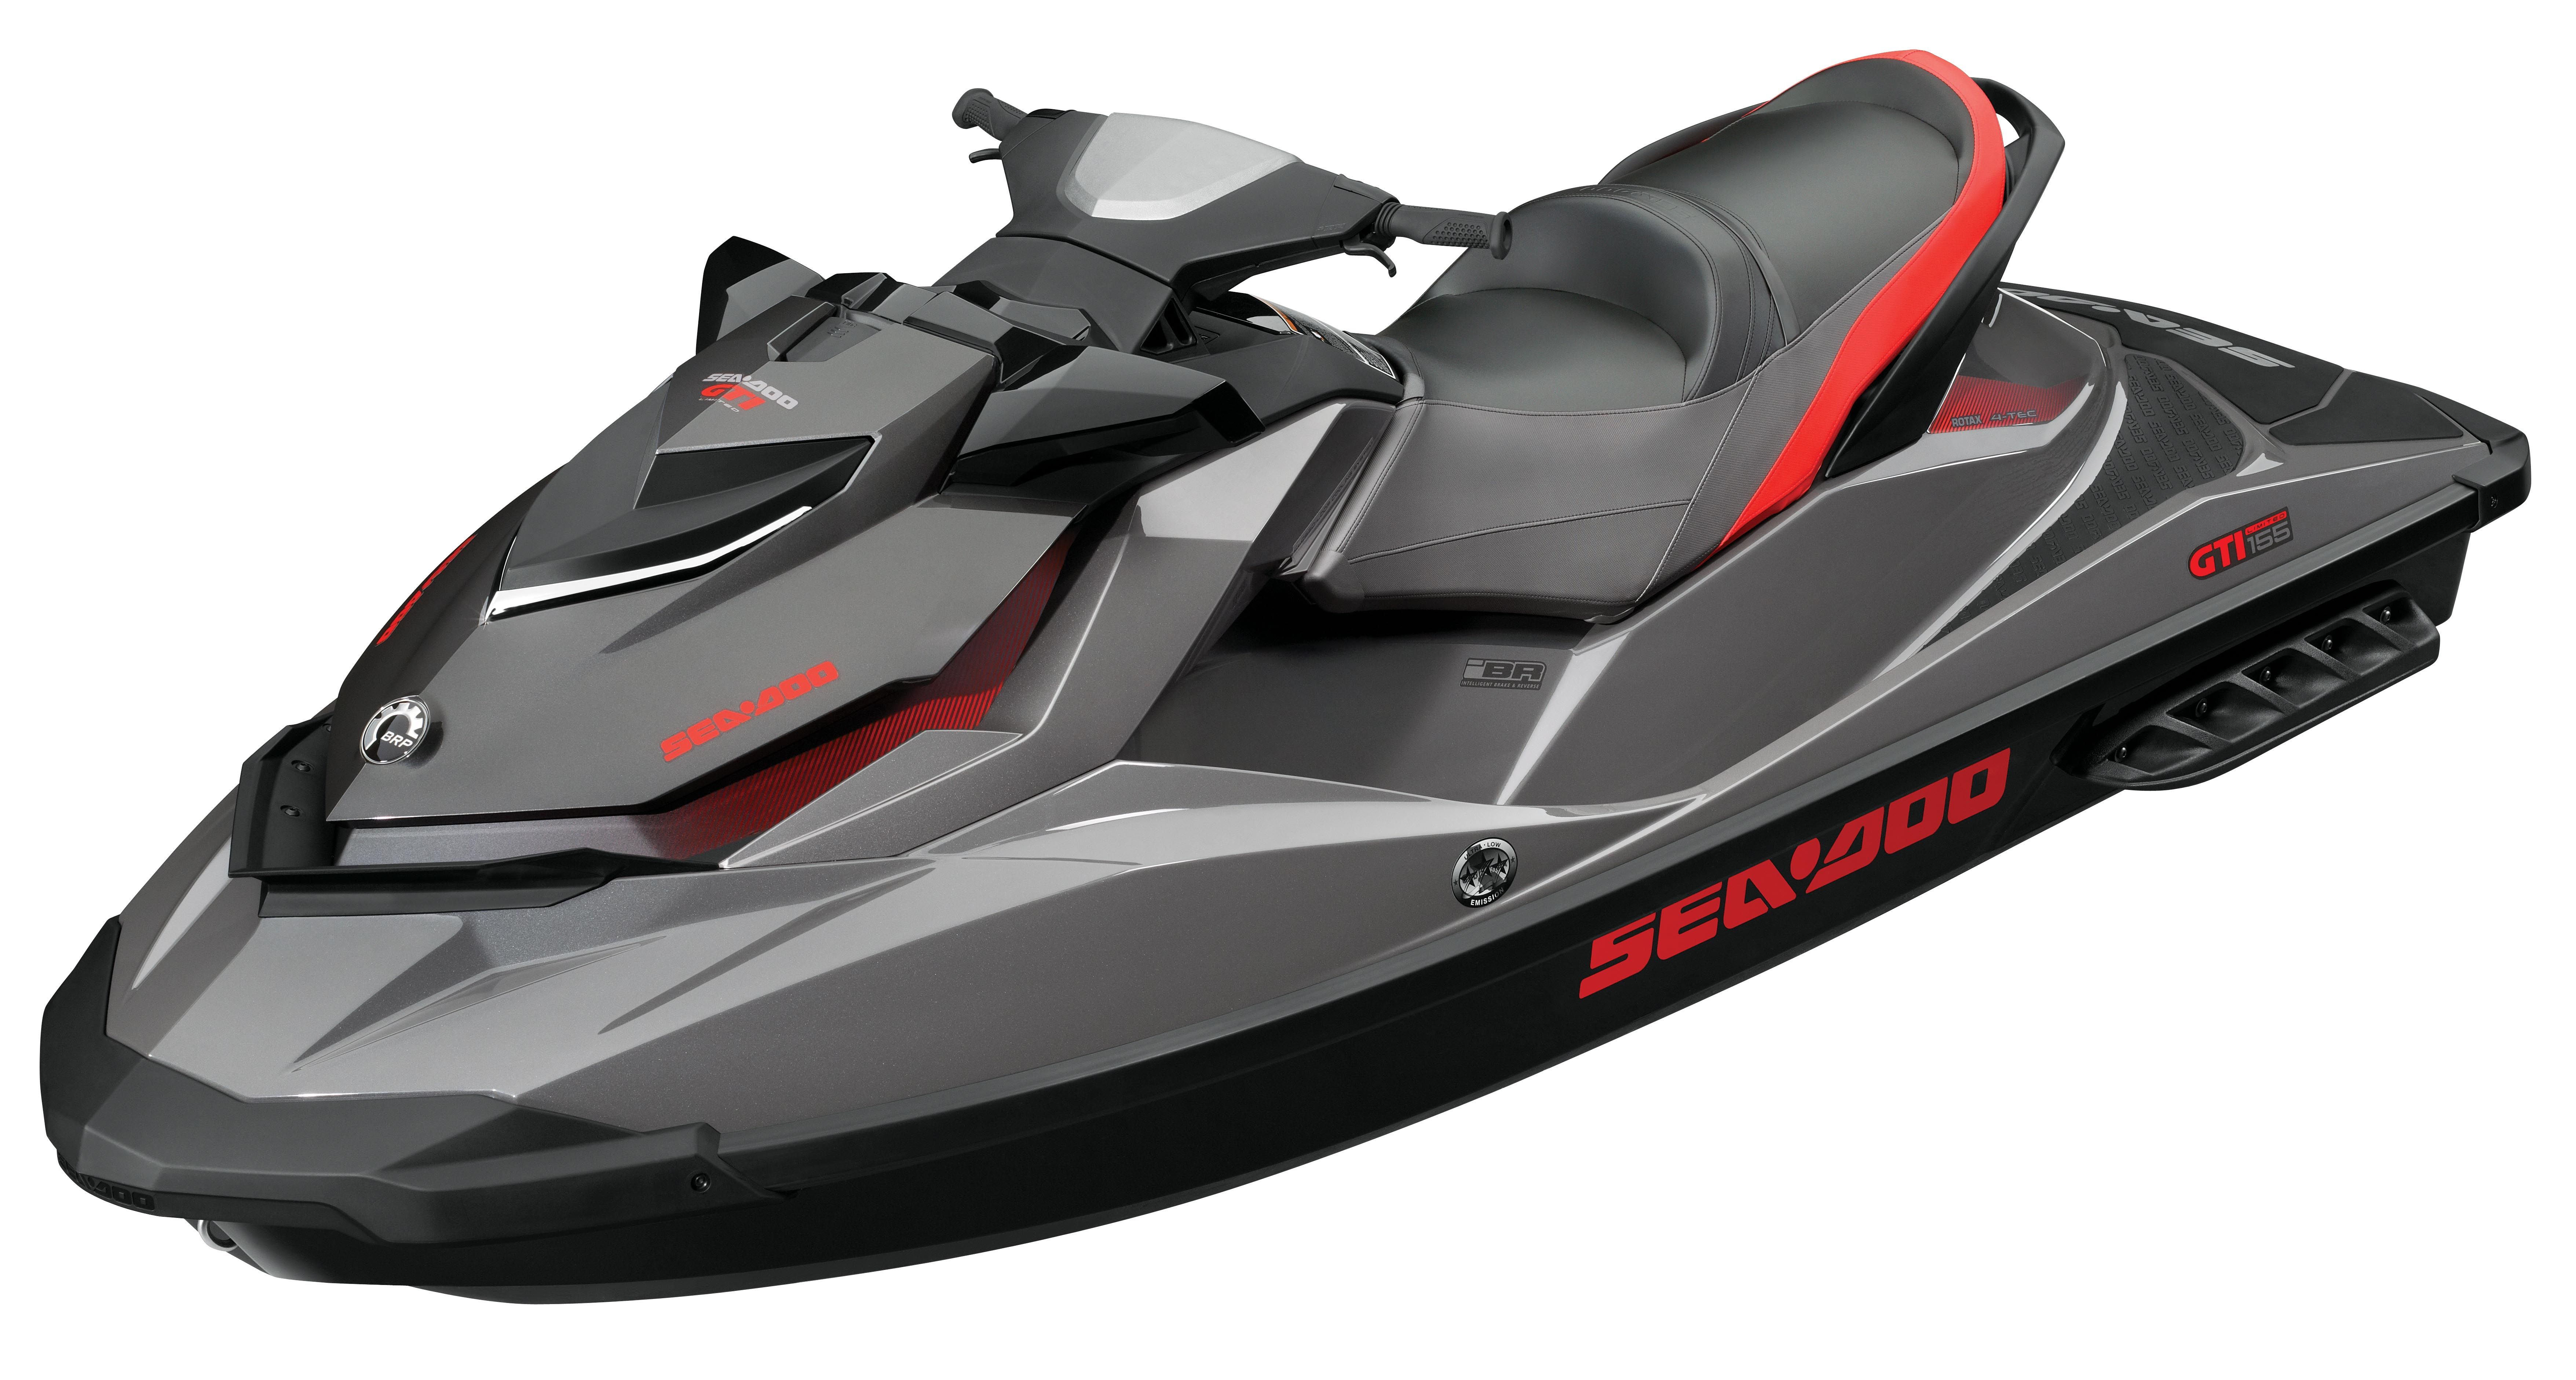 2014 sea doo gti limited 155 maximize your family fun with more exclusive features